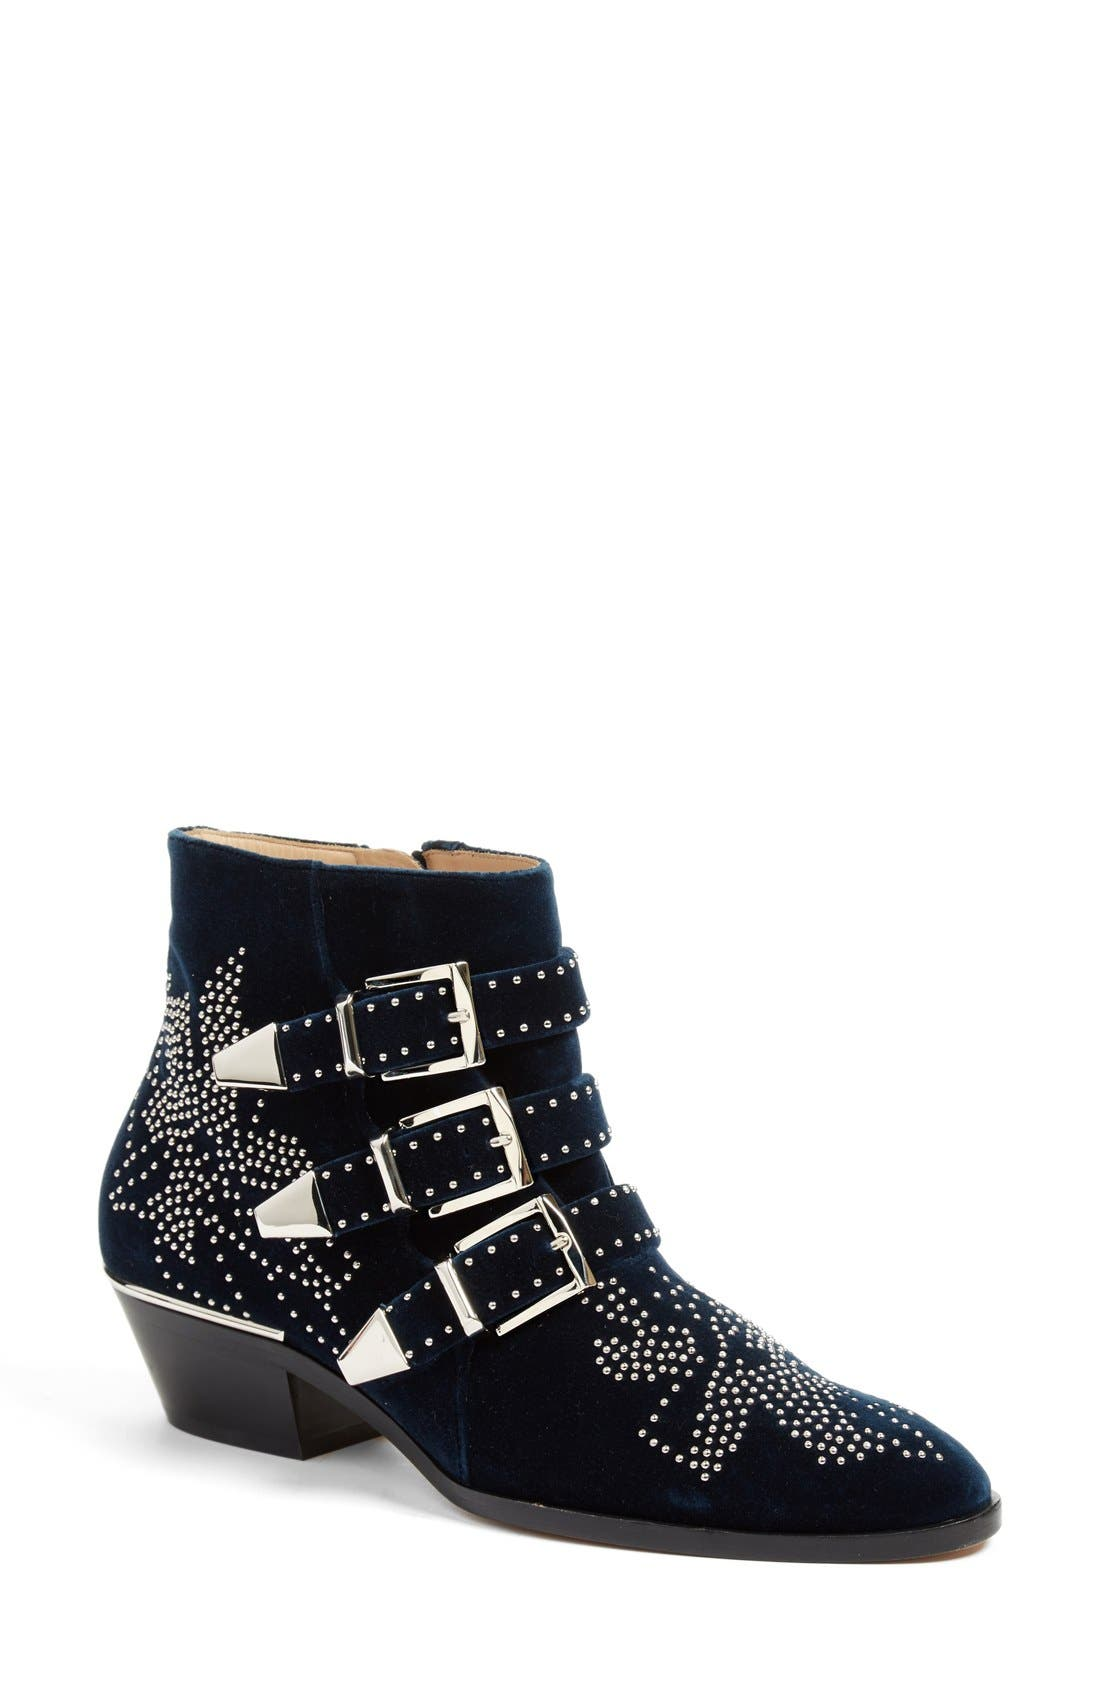 Main Image - Chloé 'Susan' Studded Buckle Boot (Women)